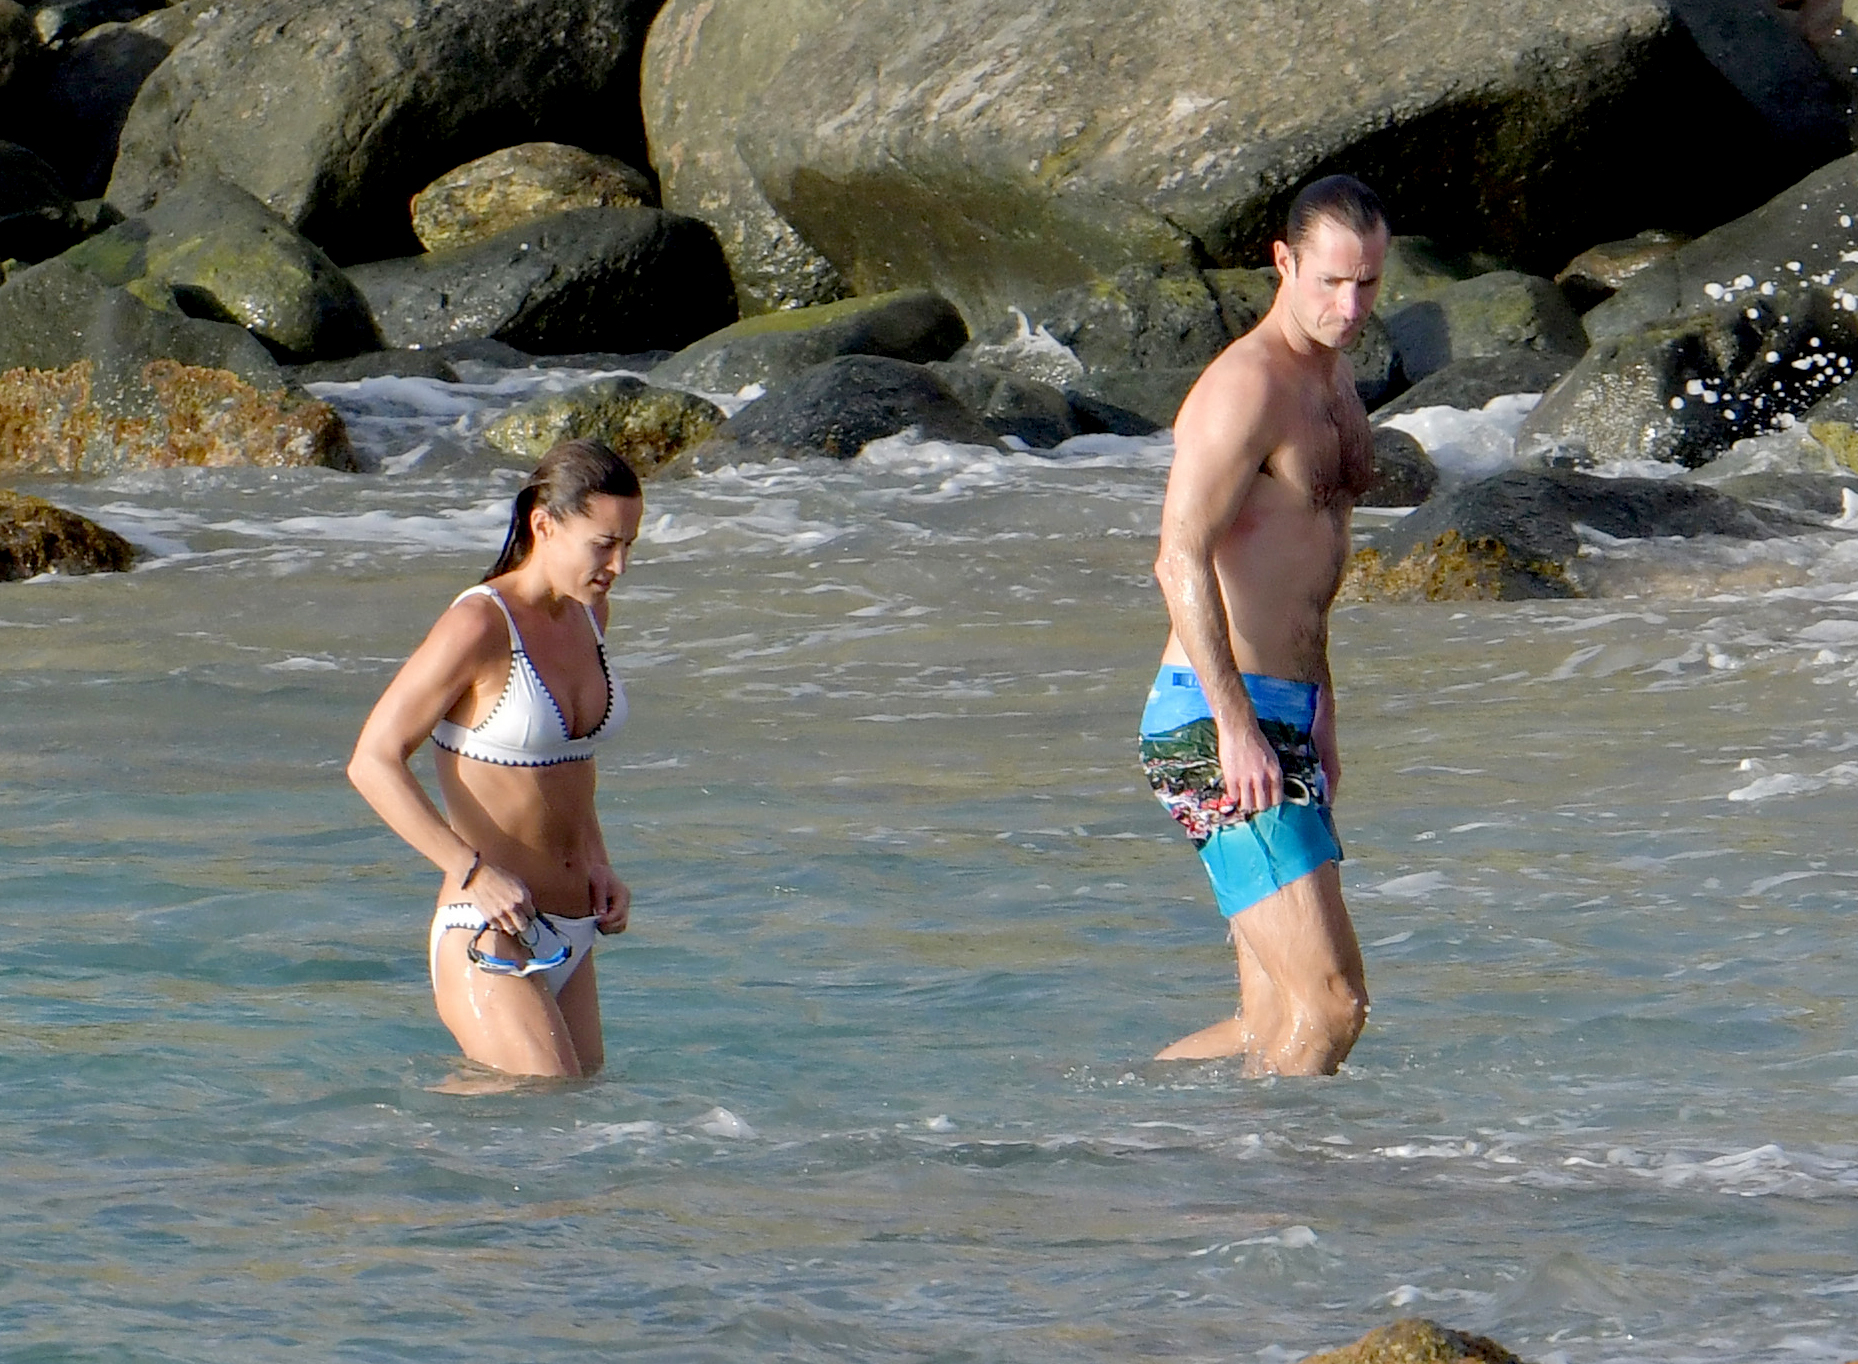 Pippa-Middleton-white-bikini-st-barts-James-Matthews - Middleton wasn't the only one sporting a toned physique for the outing. The race car driver wore printed blue swim trunks and was all muscle as he stepped out of the water alongside his wife.